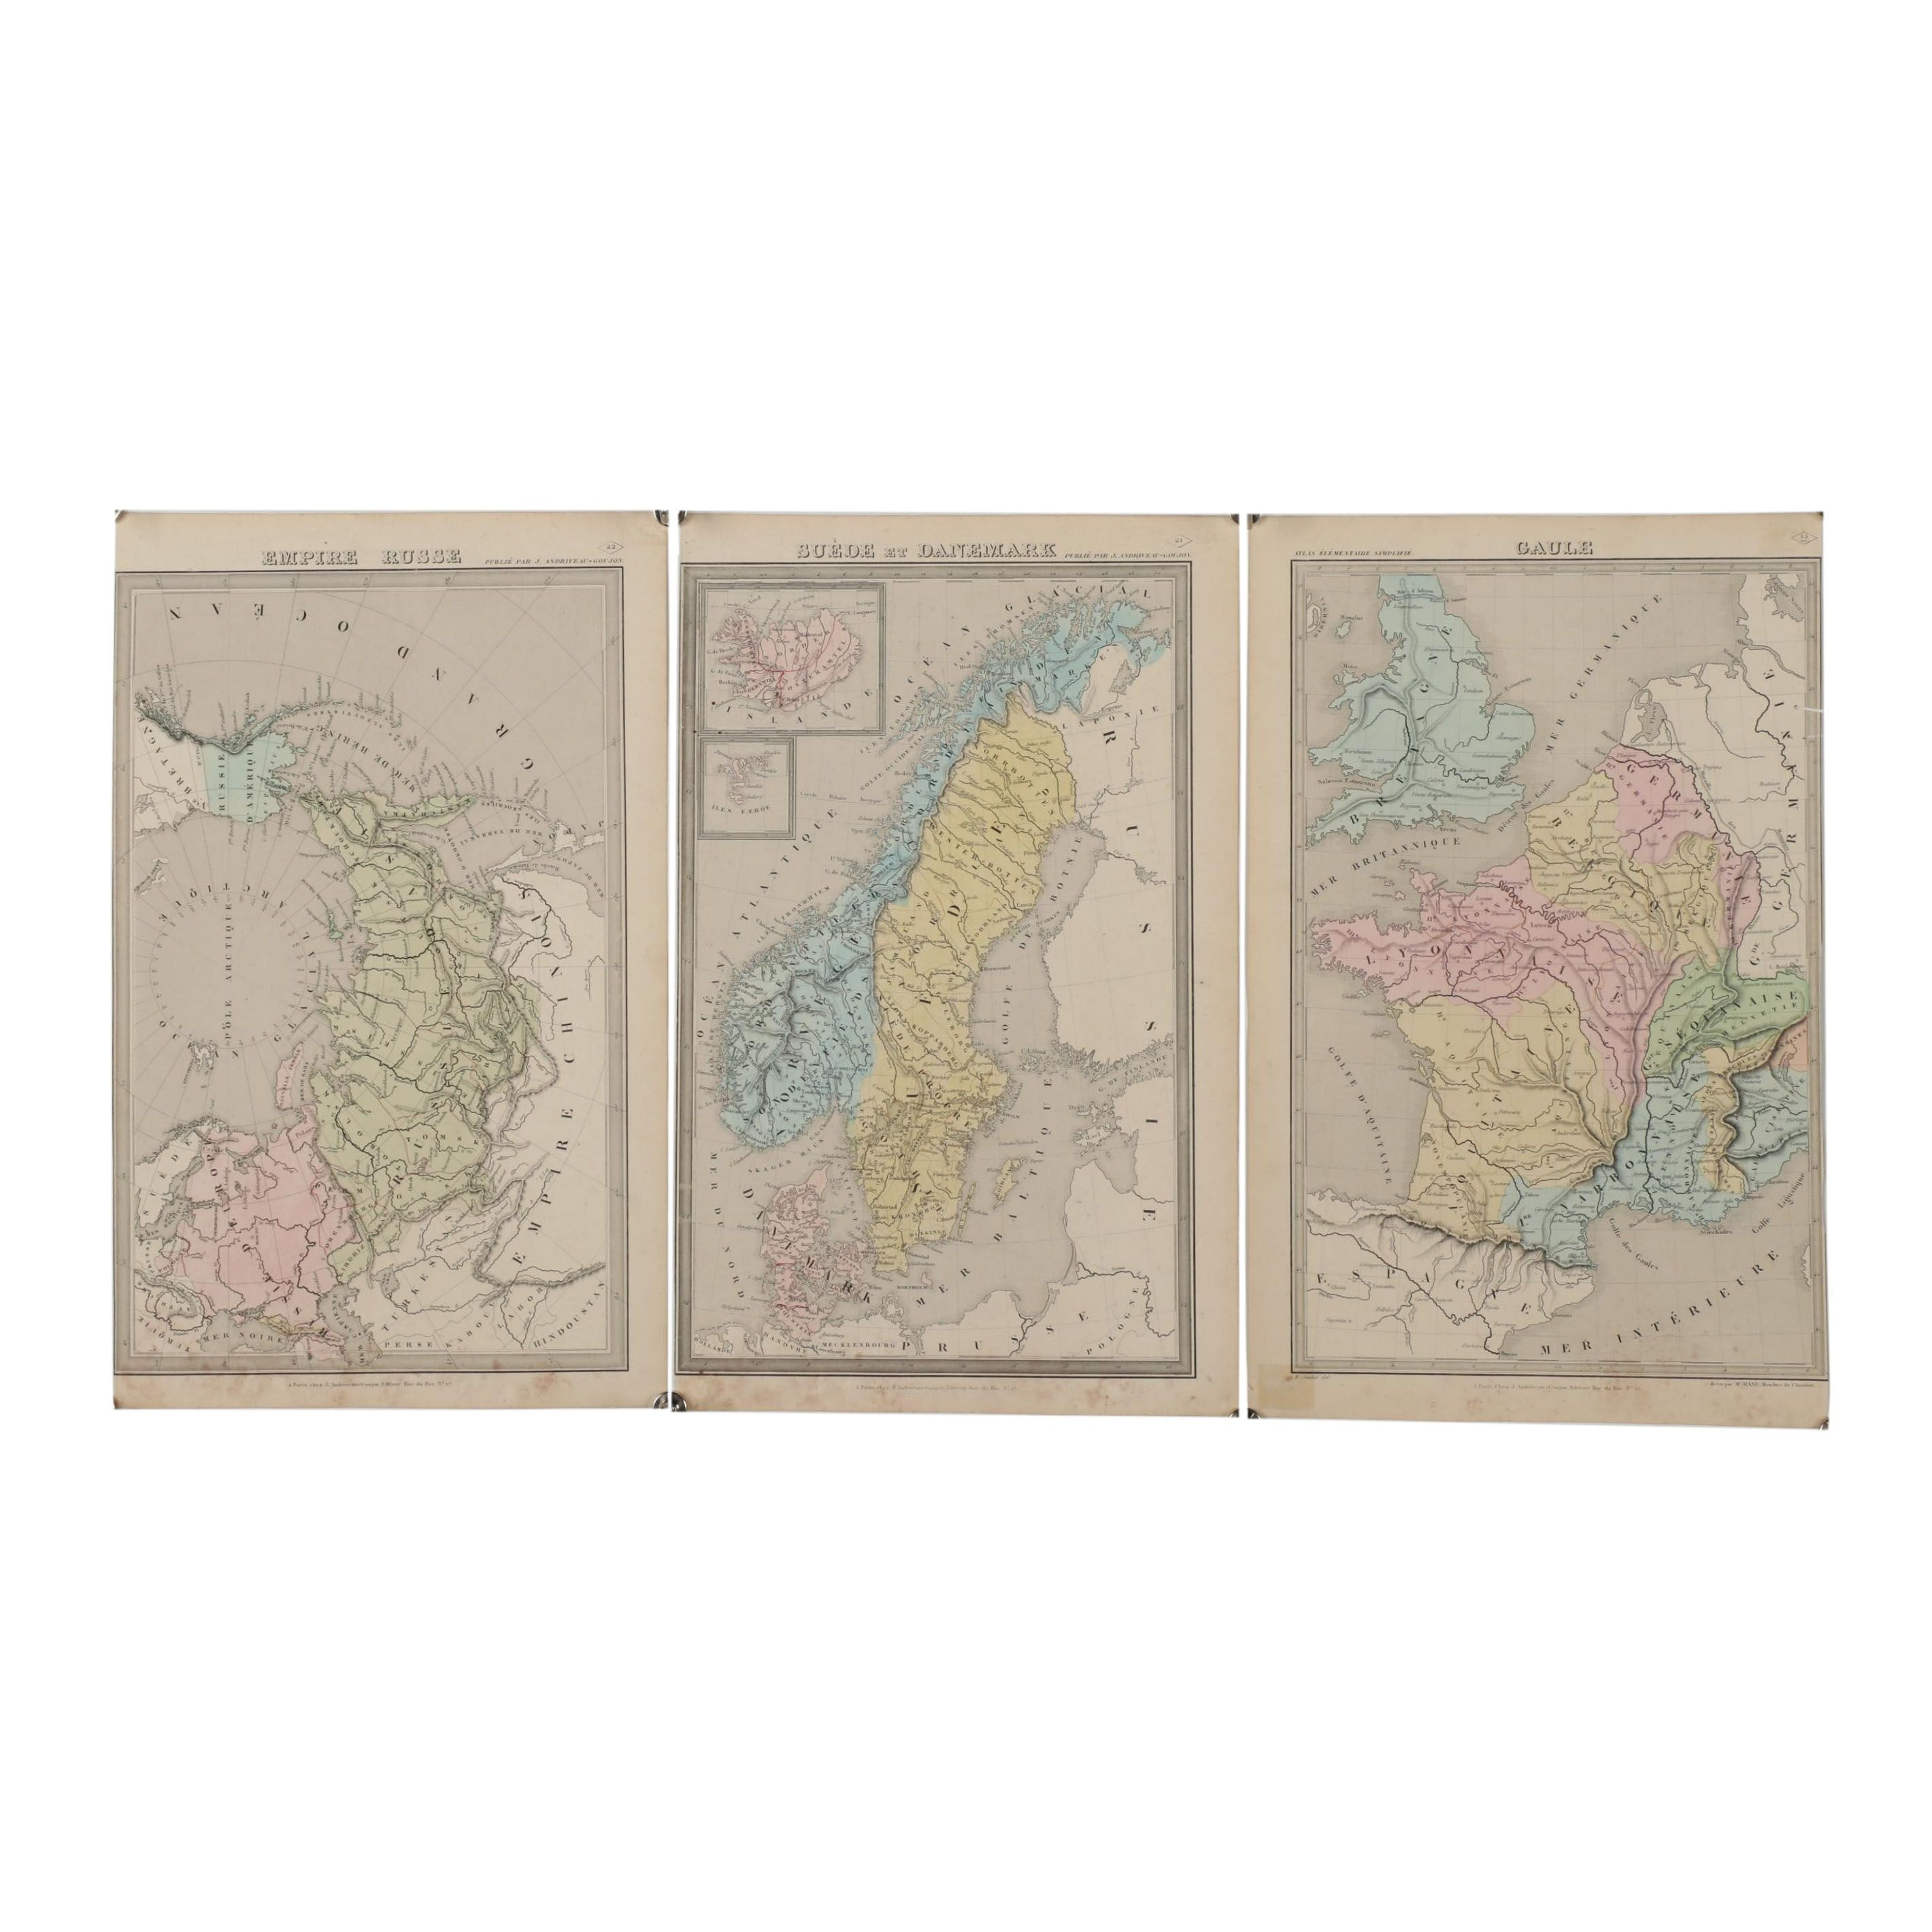 Eugène Andriveau-Goujon Hand-Colored Lithographic Maps